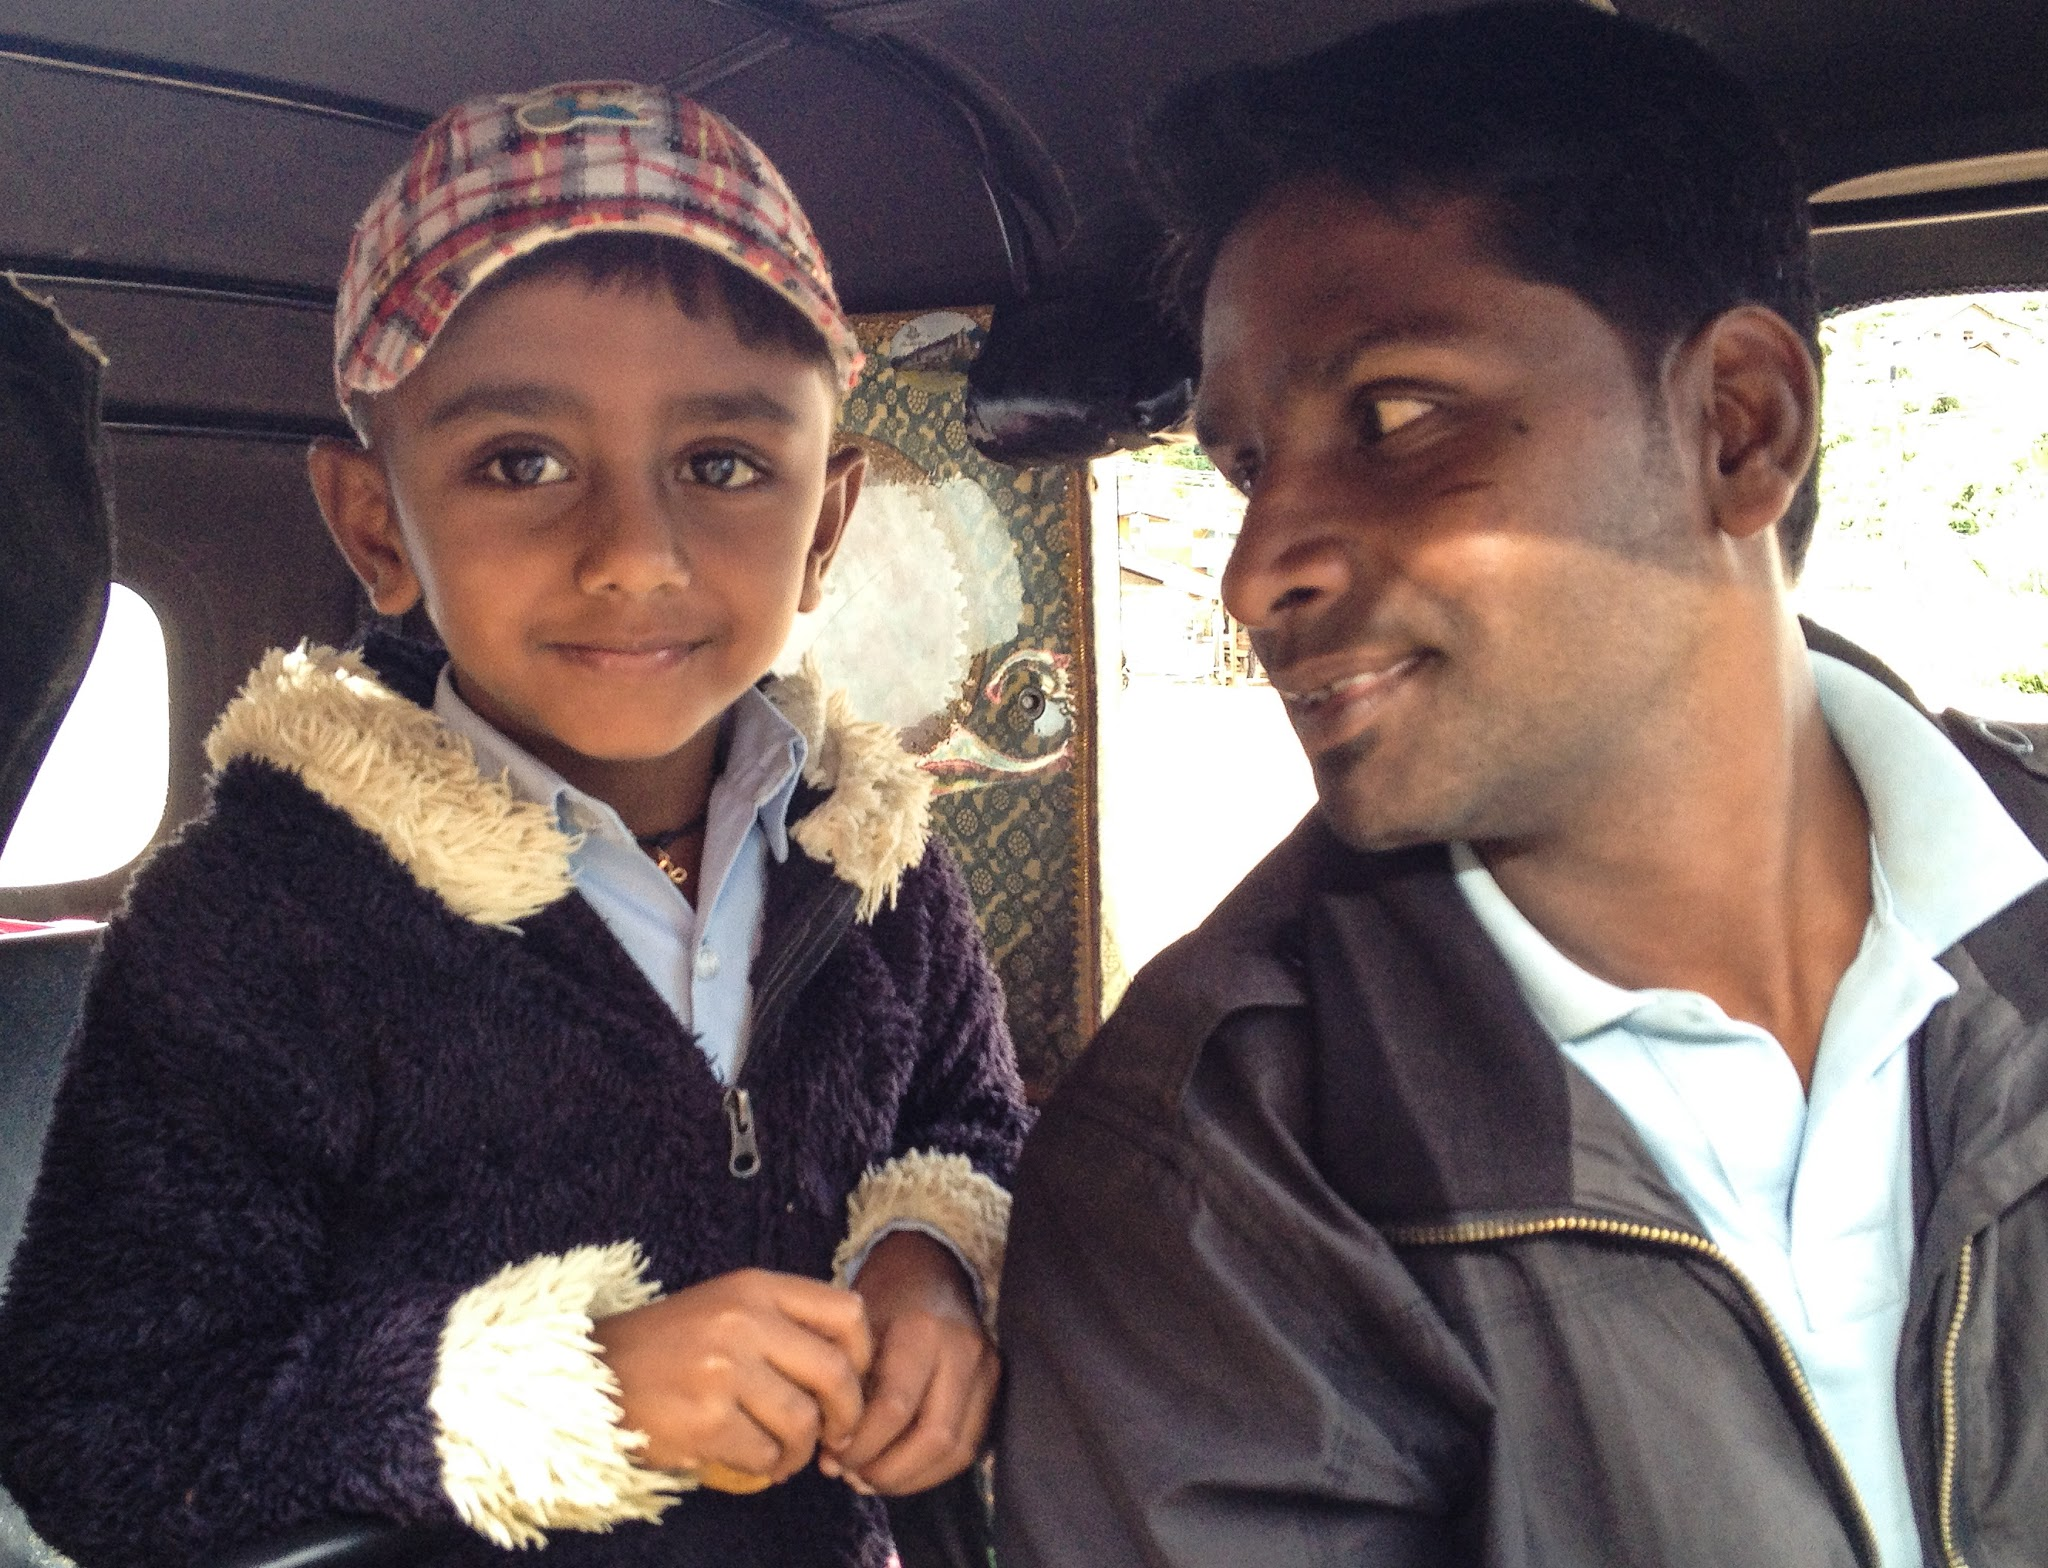 sri lankan tuk tuk driver and his son on their way to school